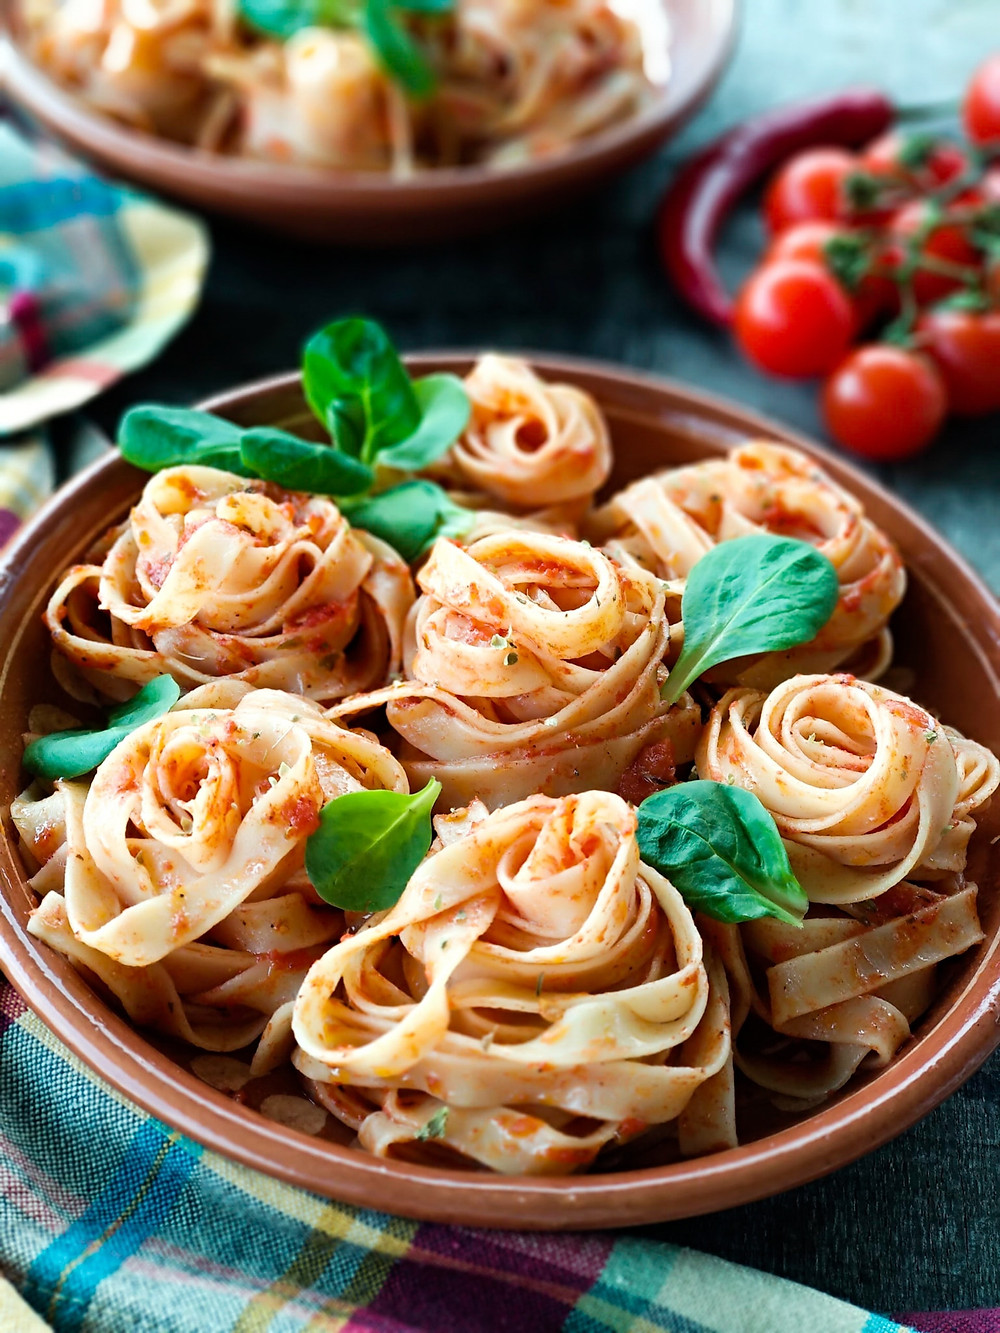 Italian cuisine, home cooking ideas for inspiration